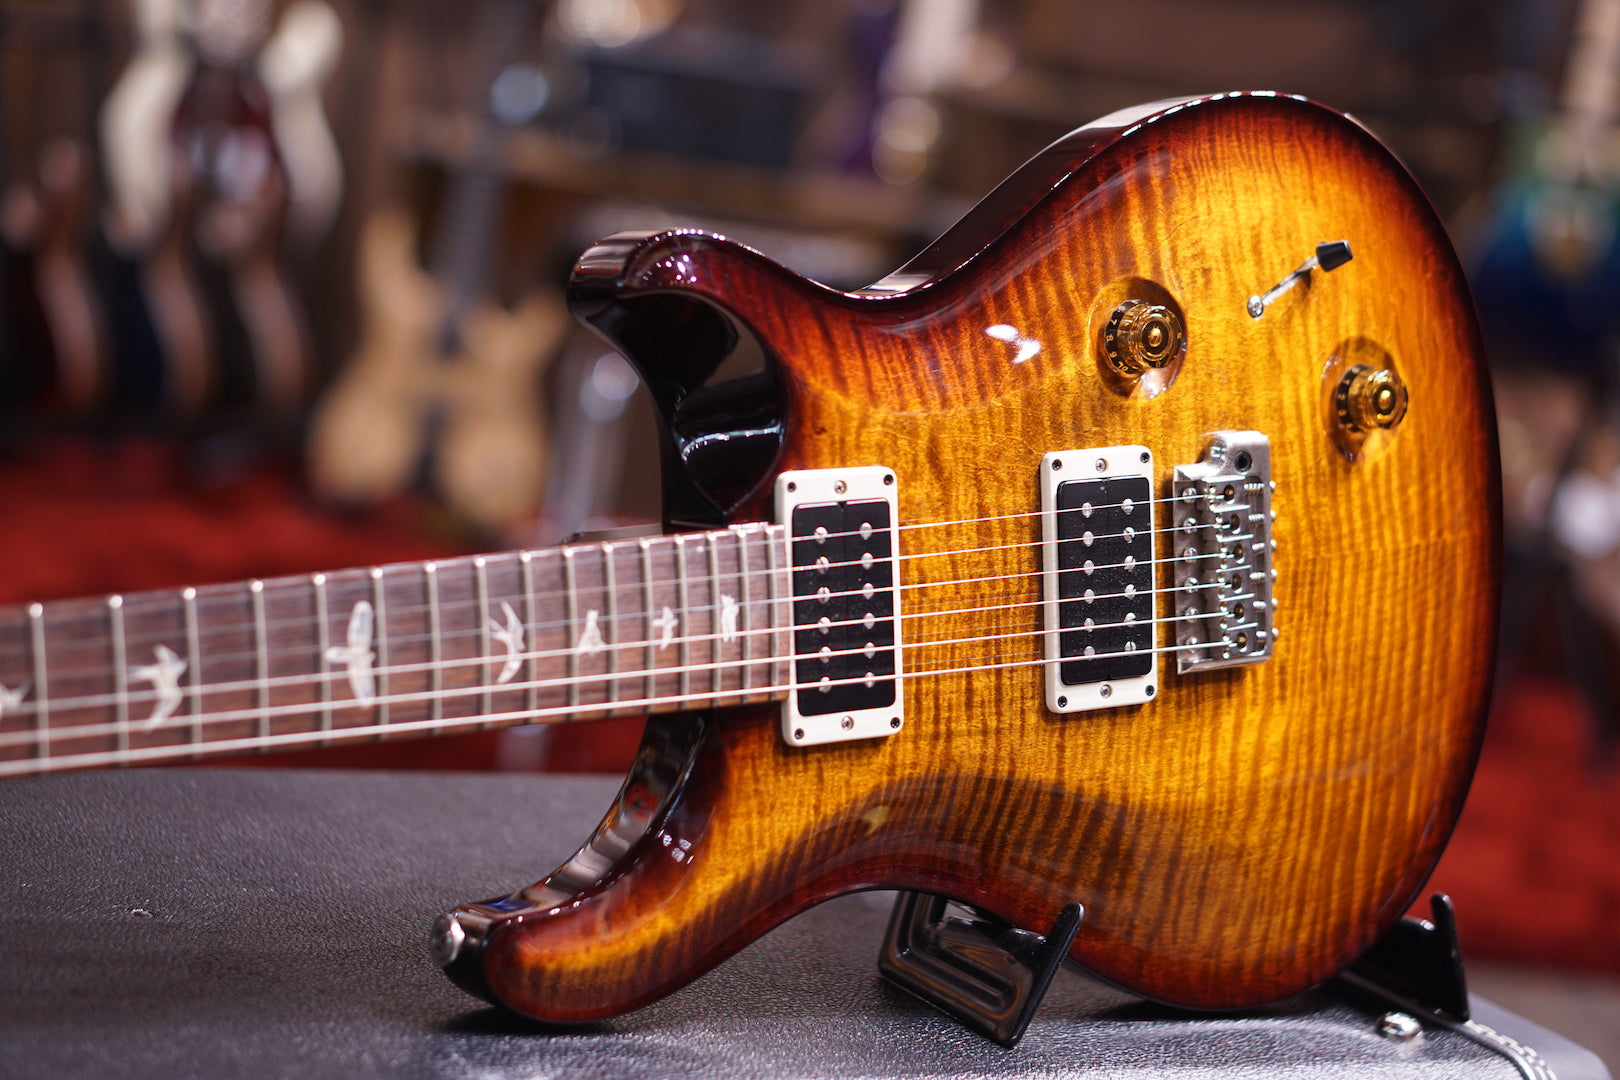 PRS CUSTOM 22 BLACK GOLD BURST fat neck sn 204261